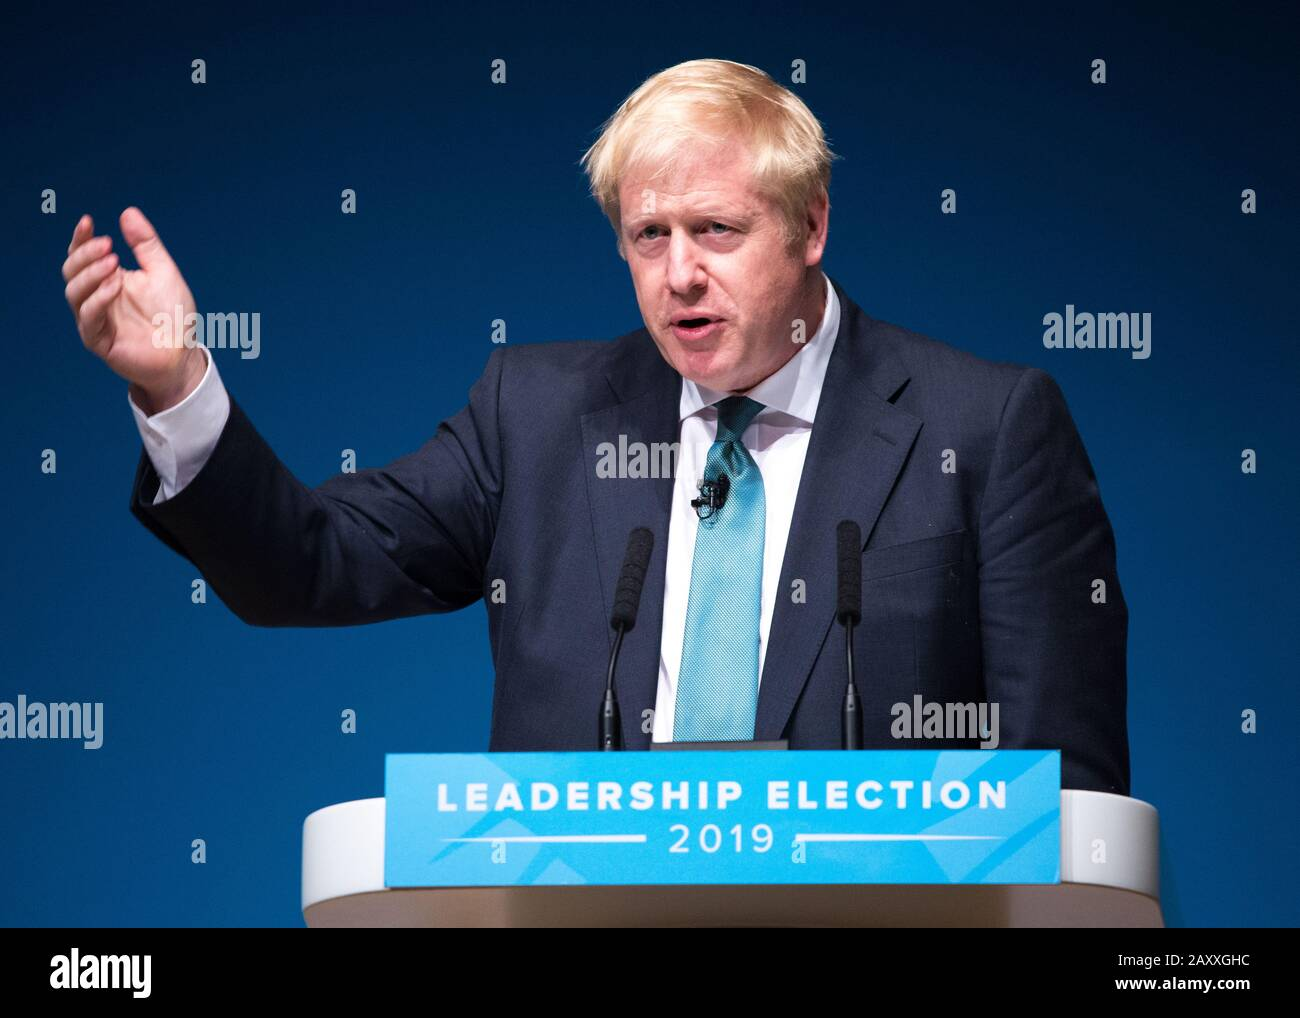 Perth, UK. 5 July 2019.  PICTURED: Boris Johnson MP Conservative leadership contenders Boris Johnson and Jeremy Hunt are to face Scottish party members at a hustings event in Perth. Credit: Colin Fisher/Alamy Live News  The hustings in Perth is the latest in a series of events around the UK which see the two candidates make a speech to local members before taking questions from a host and the audience.  Party members should receive their ballots in the coming days, with the winner to be announced on 23 July. Stock Photo